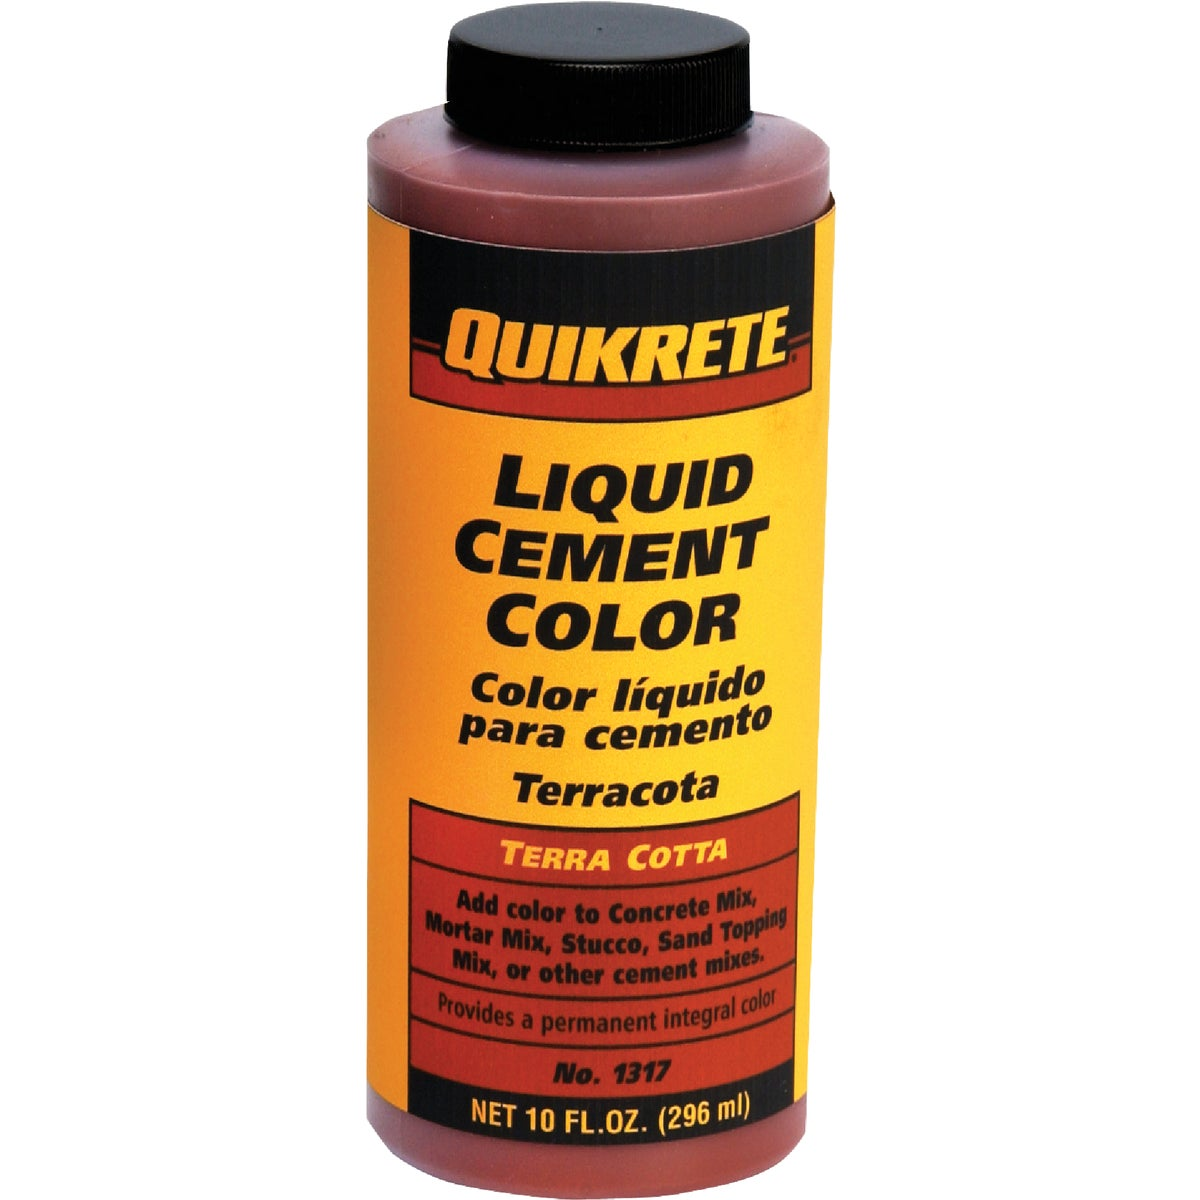 TERR LIQUID CEMENT COLOR - 1317-04 by Quikrete Co